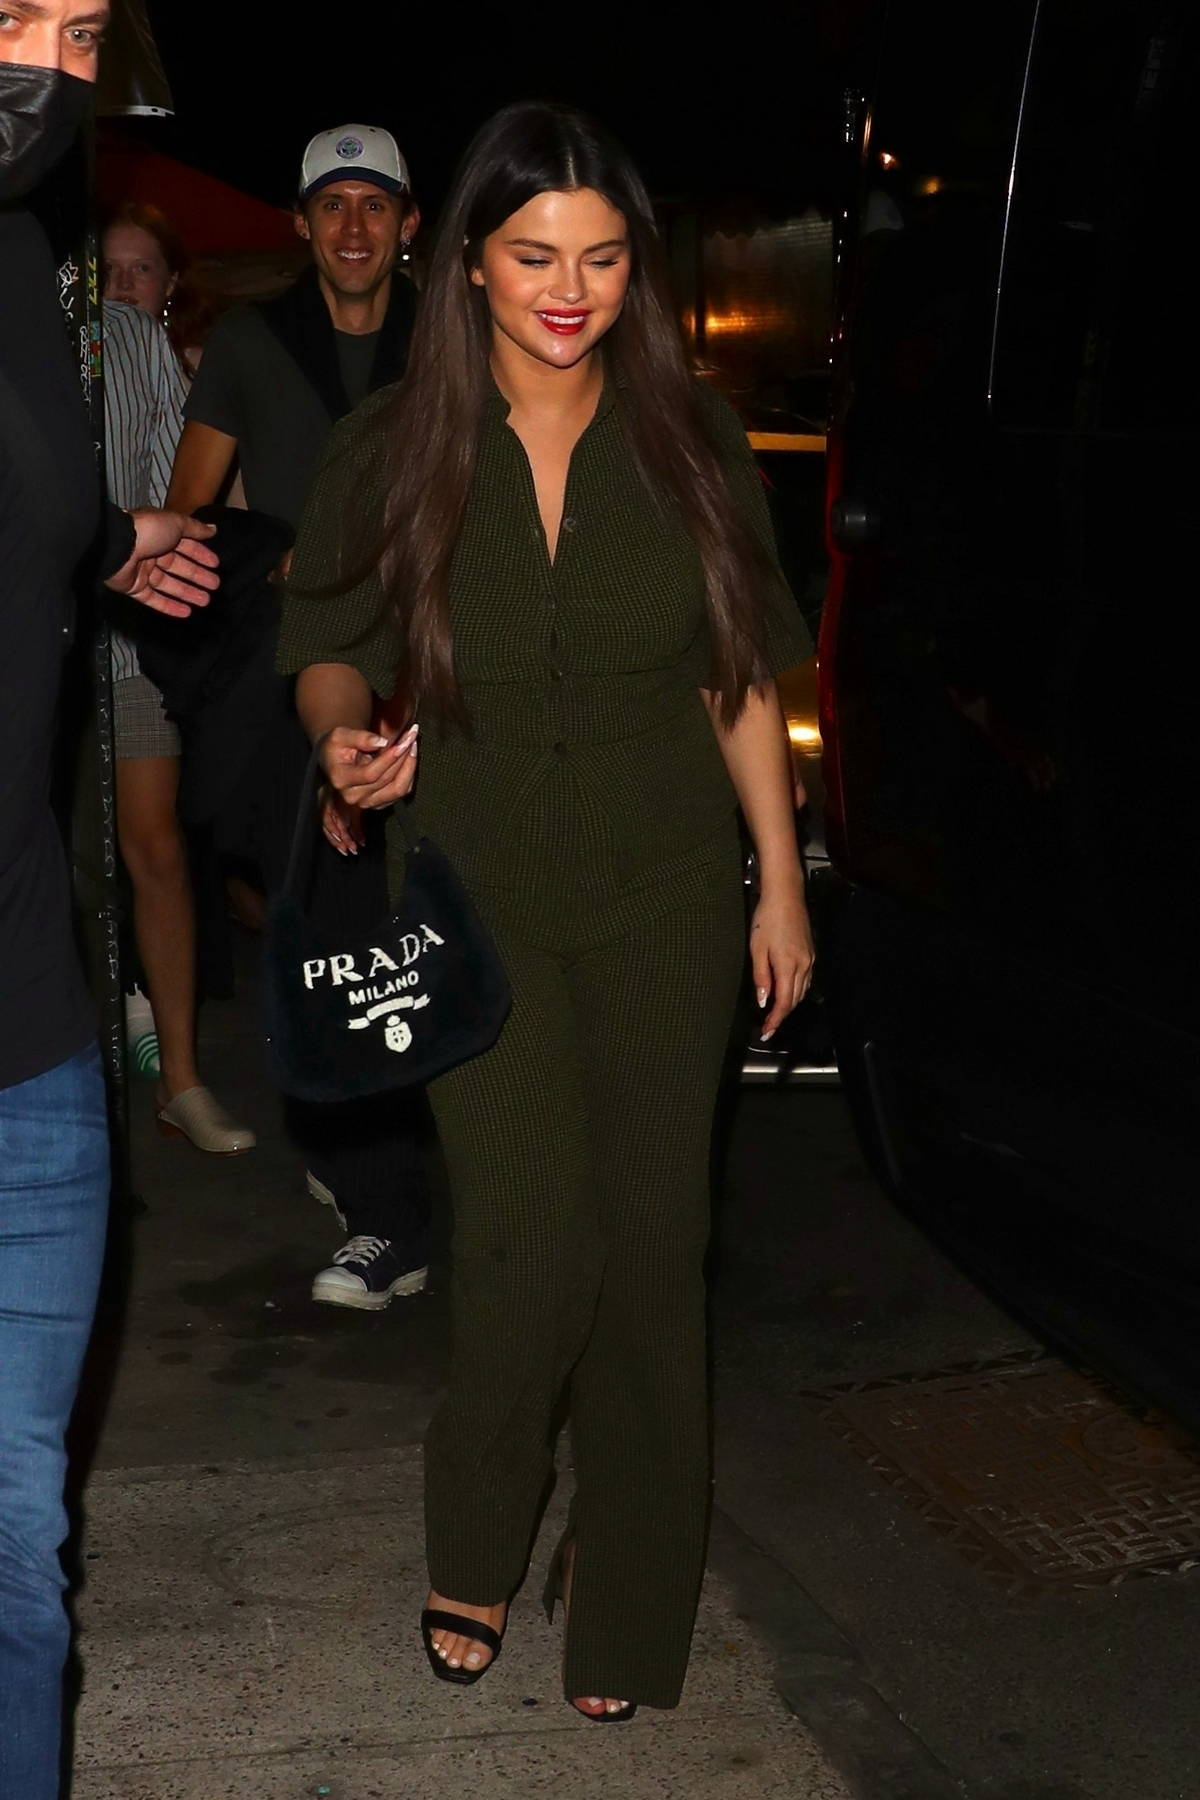 Selena Gomez looks chic in a dark green jumpsuit while out to dinner with friends at Bacaro Italian restaurant in New York City